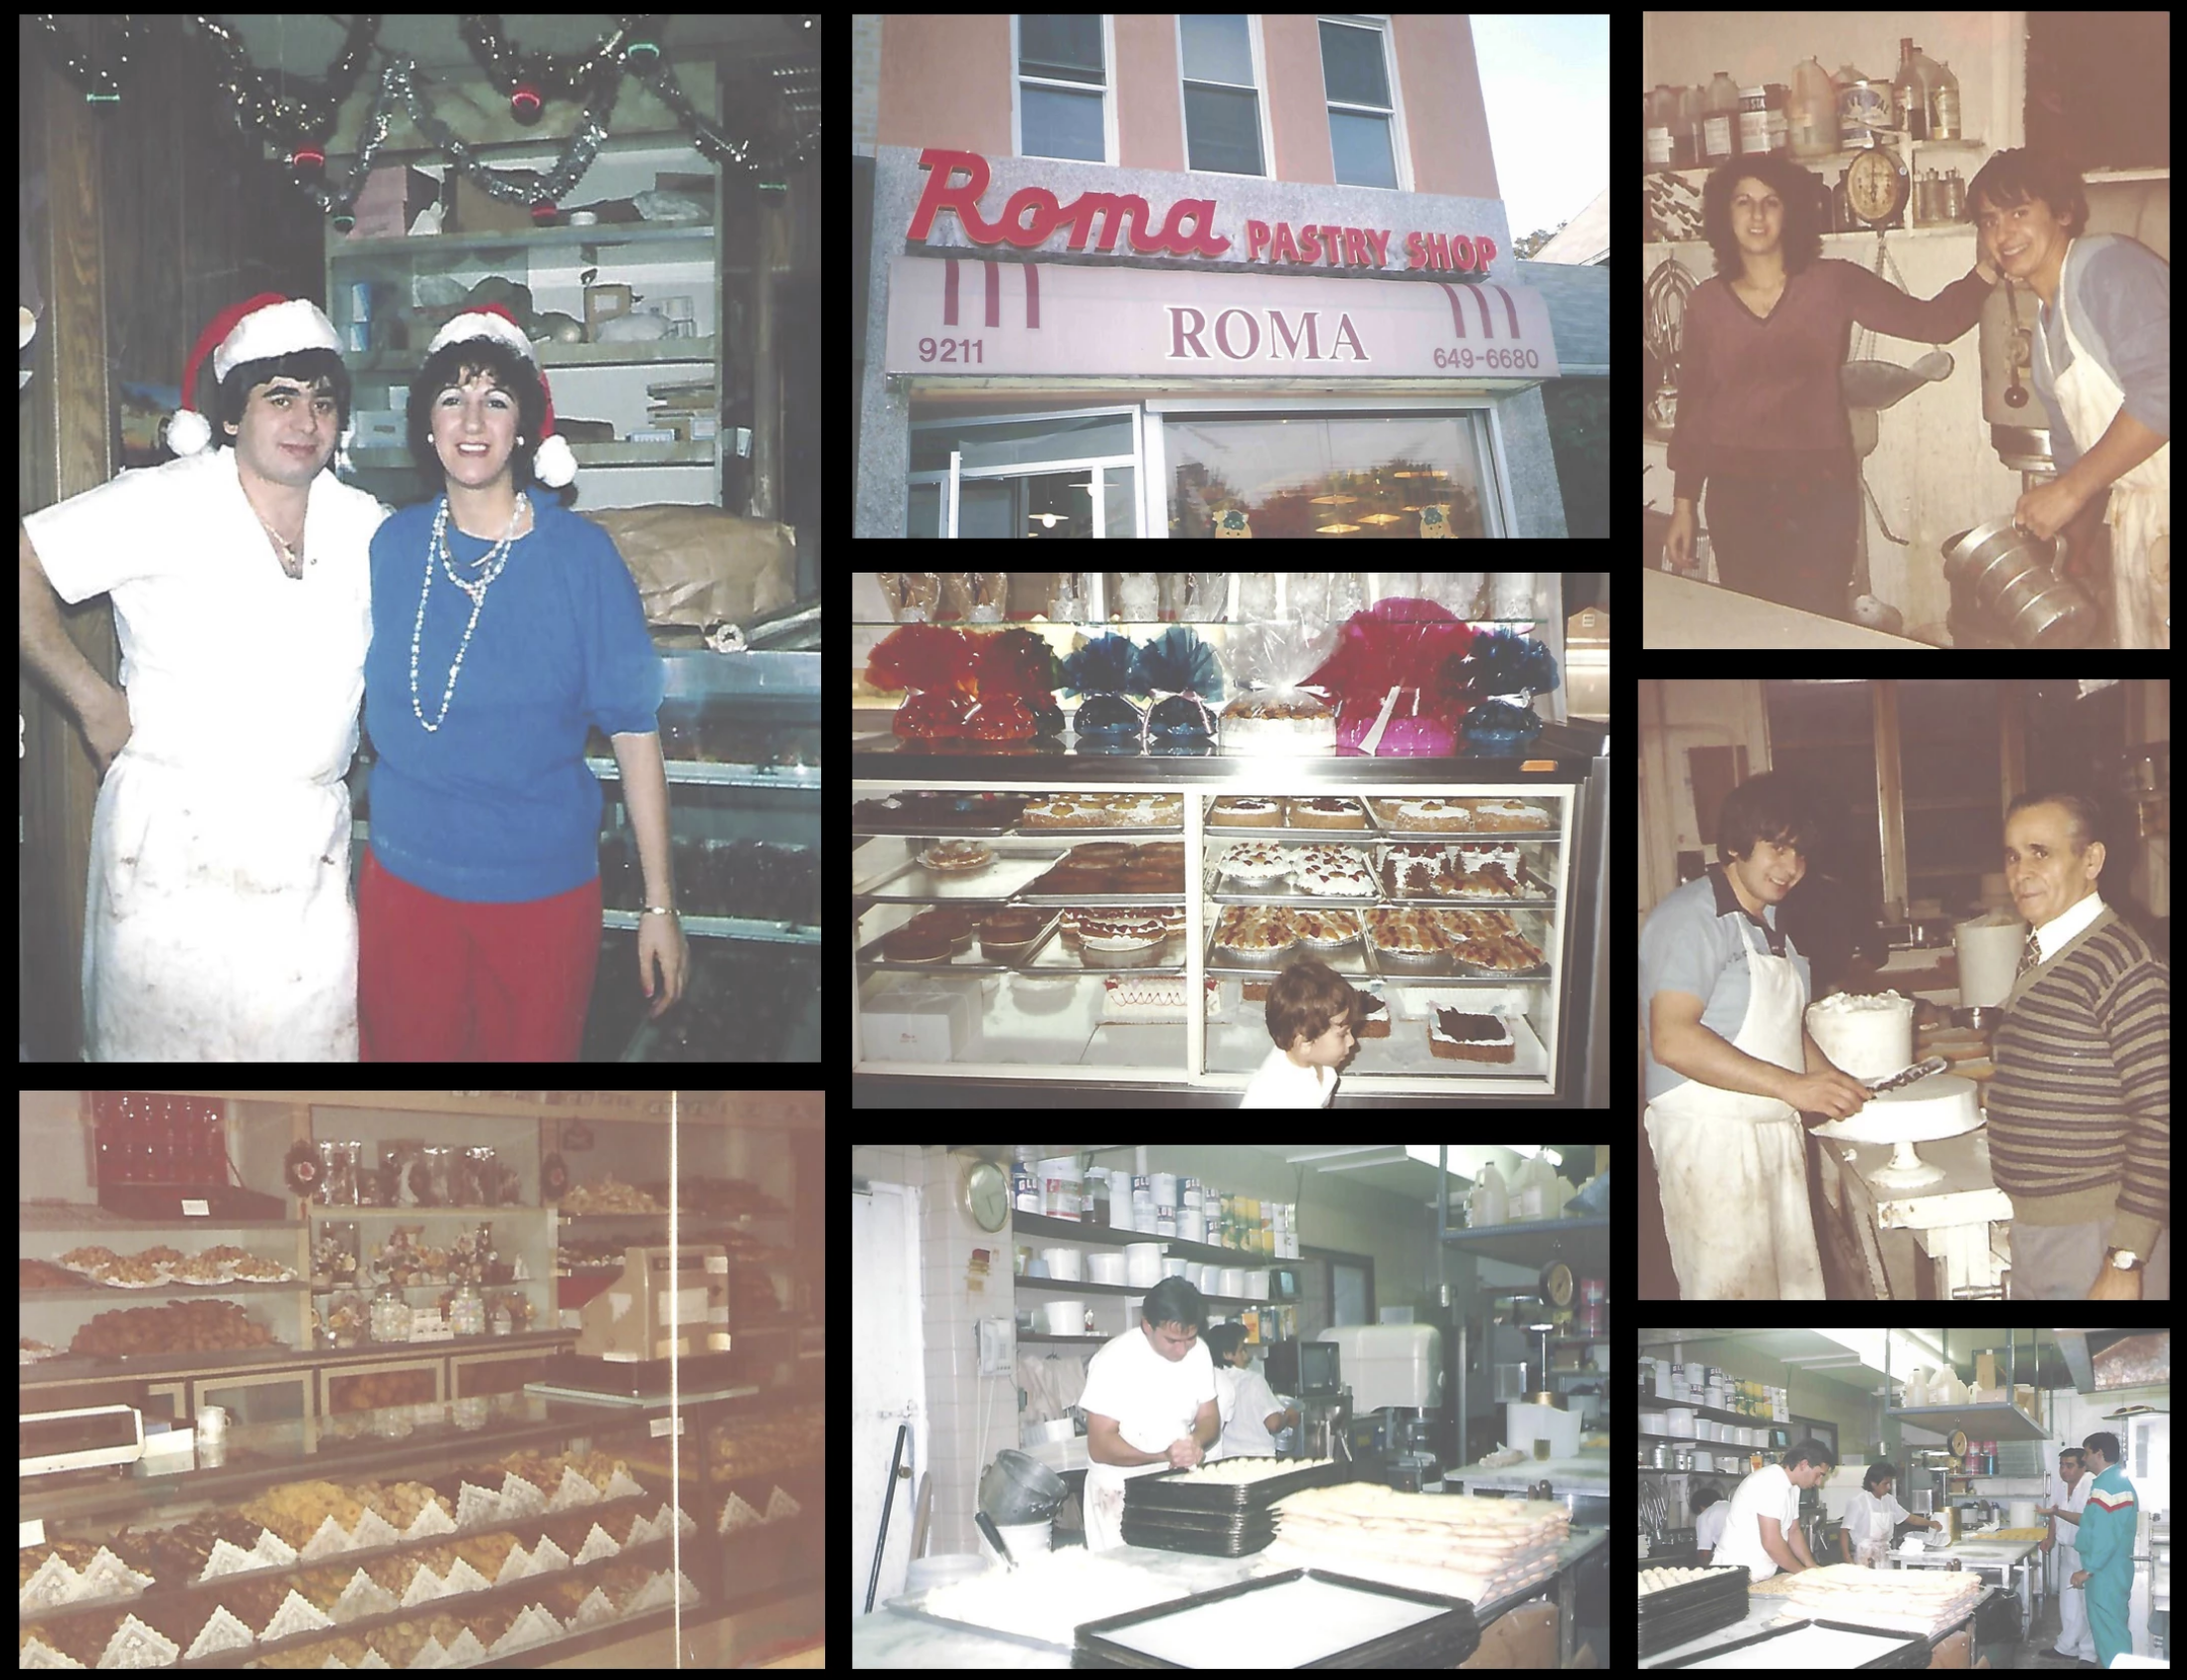 collage of photos including 2 people with santa hats on smiling, outside photo of Roma Pastry Shop, 2 people smiling at the camera, a photo of the different pastries behind the glass and staff members serving customers